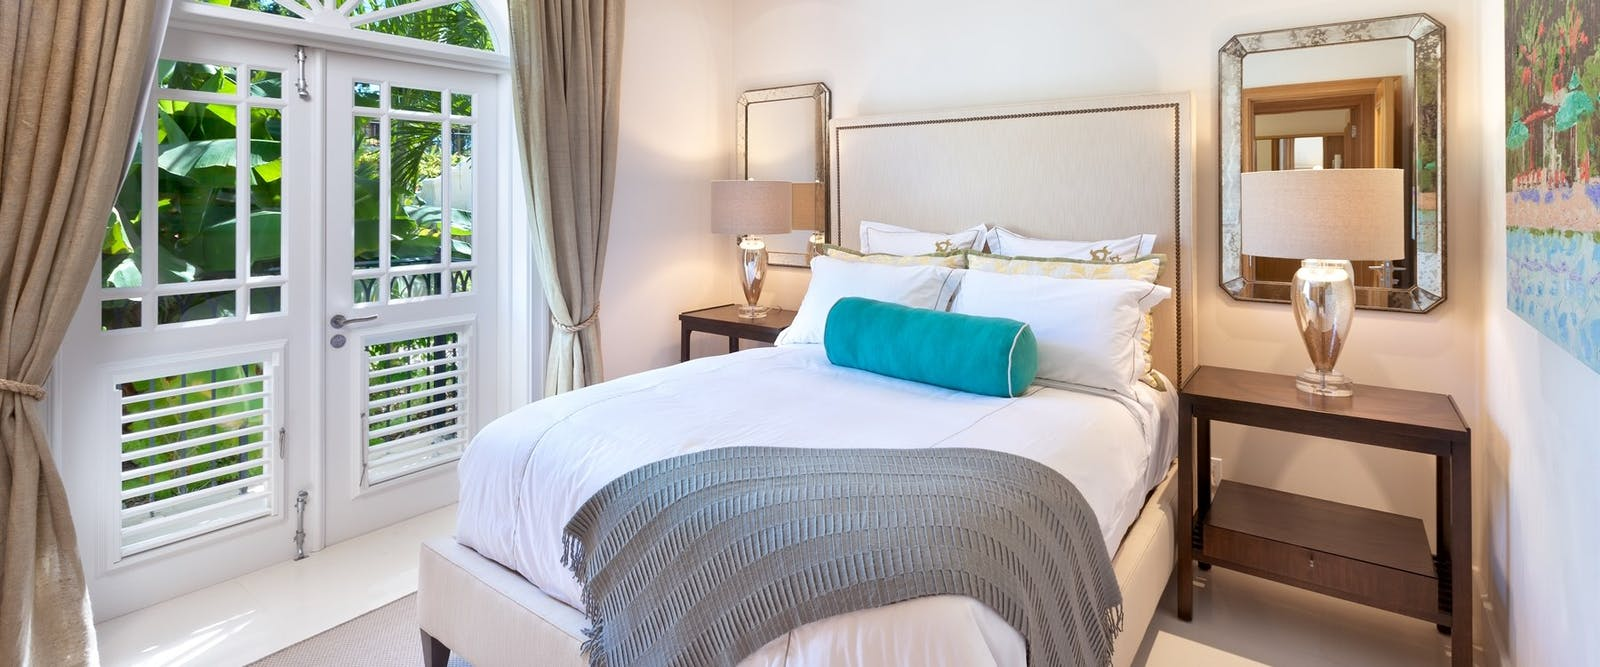 Bedroom Interior at Port Ferdinand Marina & Luxury Residences, Barbados